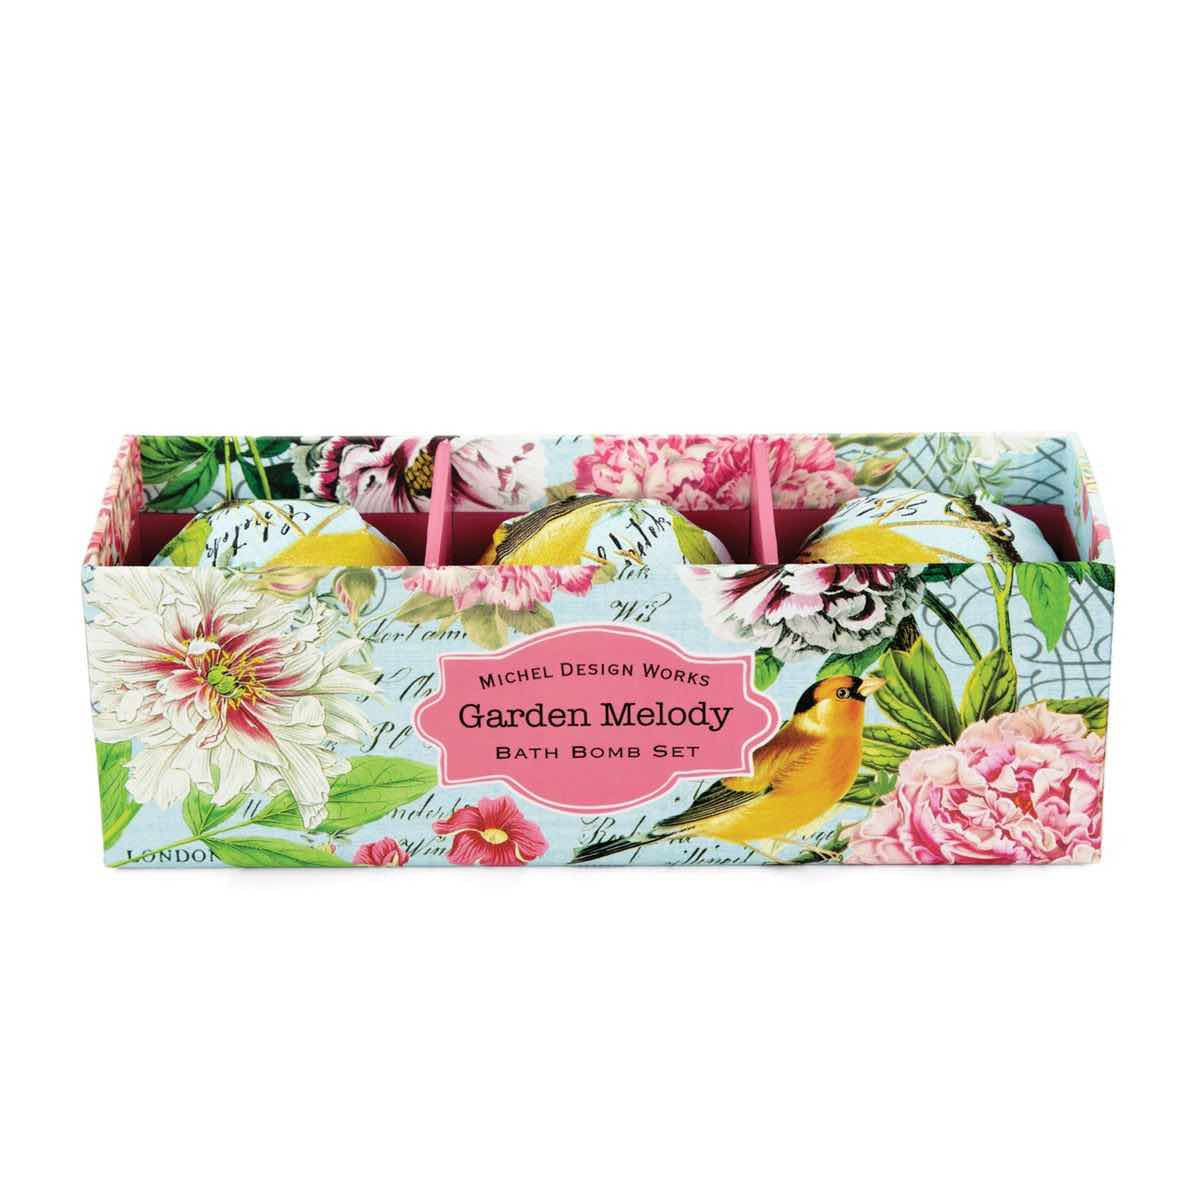 Michel Design Works Bath Bomb Set | Garden Melody